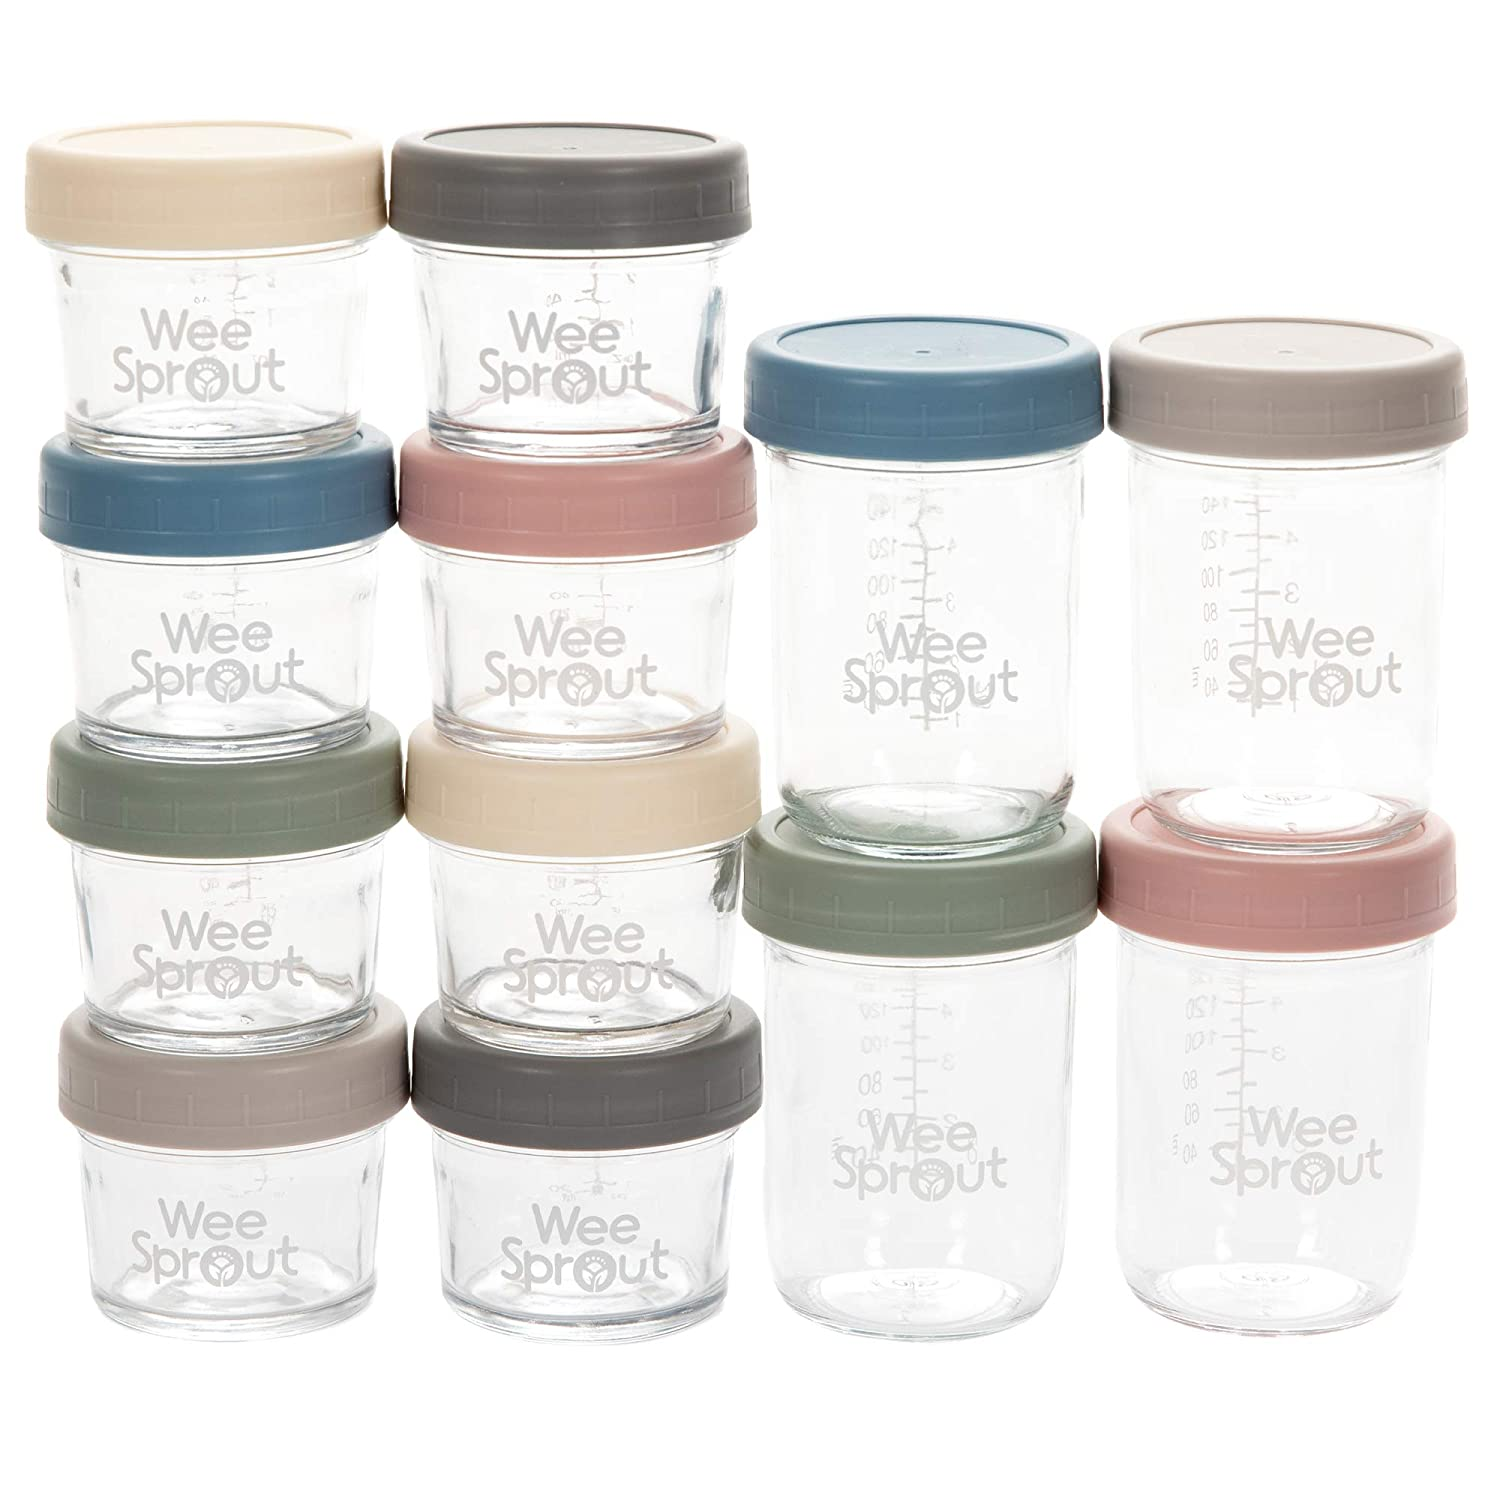 WeeSprout Glass Baby Food Storage Jars - 12 Set | 4 oz & 8 oz Baby Food Jars with Lids | Freezer Storage | Reusable Small Glass Baby Food Containers | Microwave/Dishwasher Friendly | for Babies